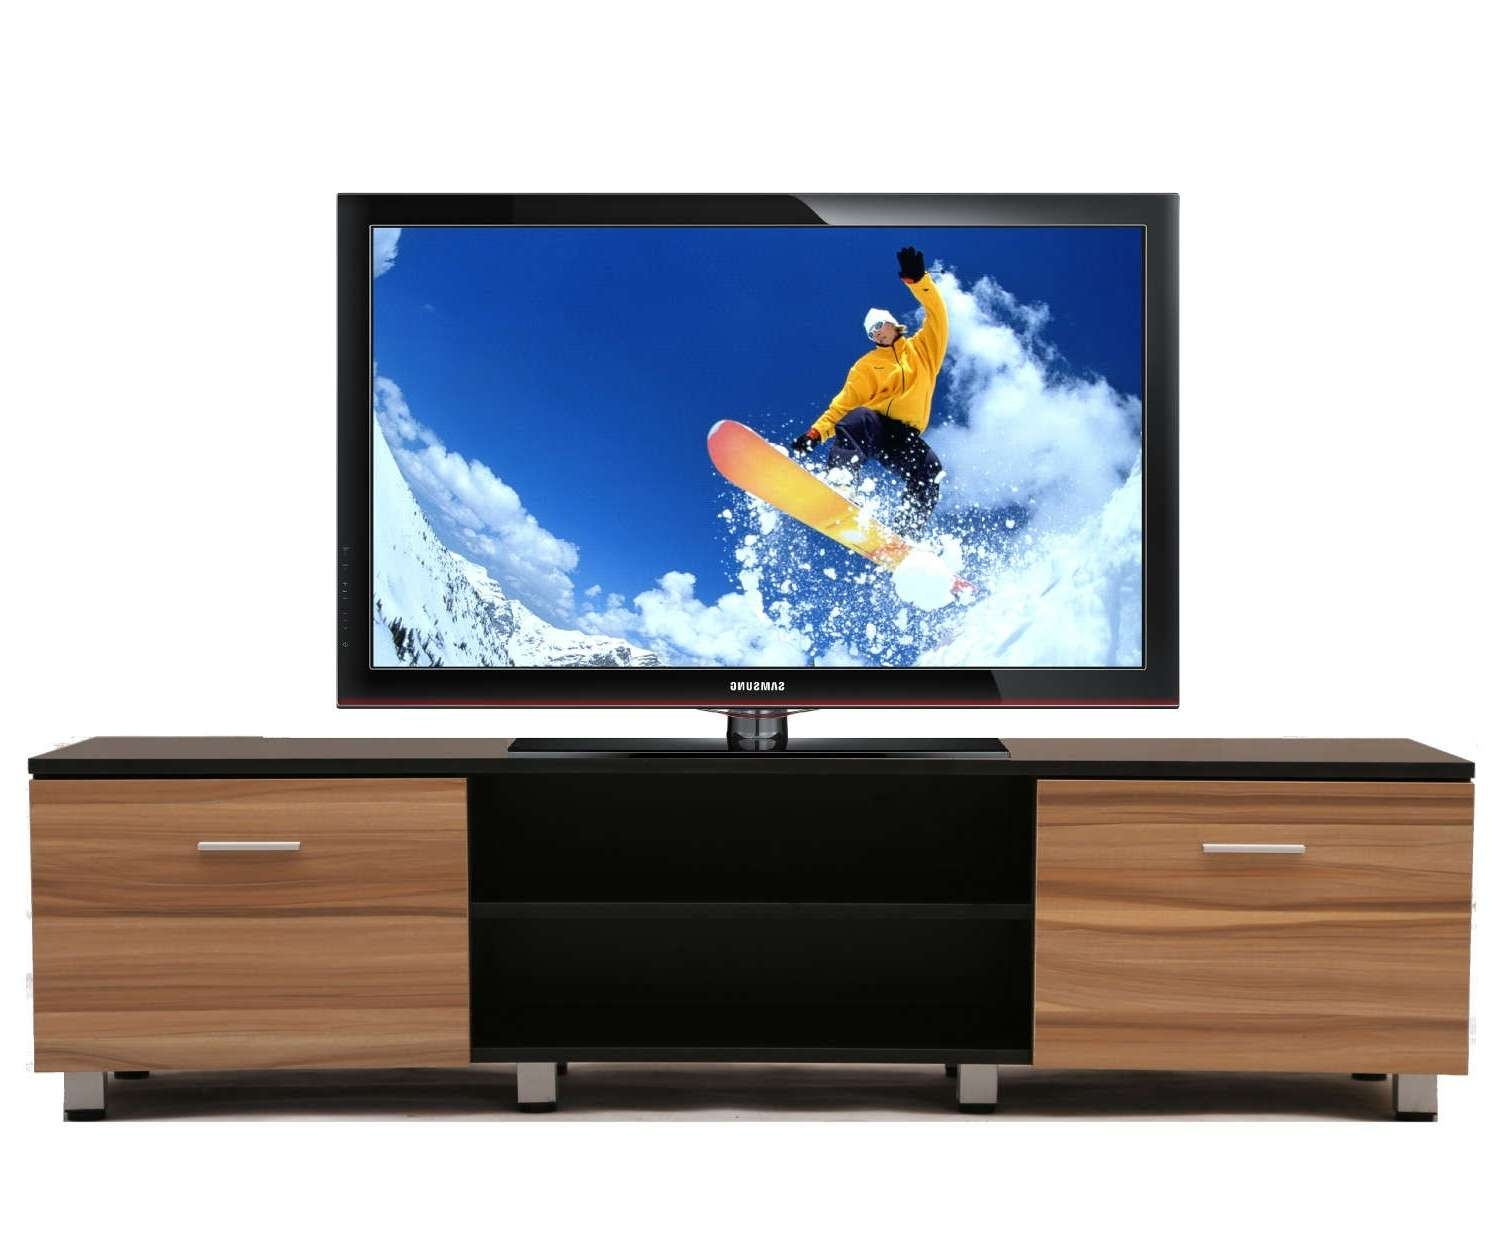 Wooden Samba Tv Unit Stand Cabinet | Furniturebox Inside Wooden Tv Cabinets (View 6 of 20)